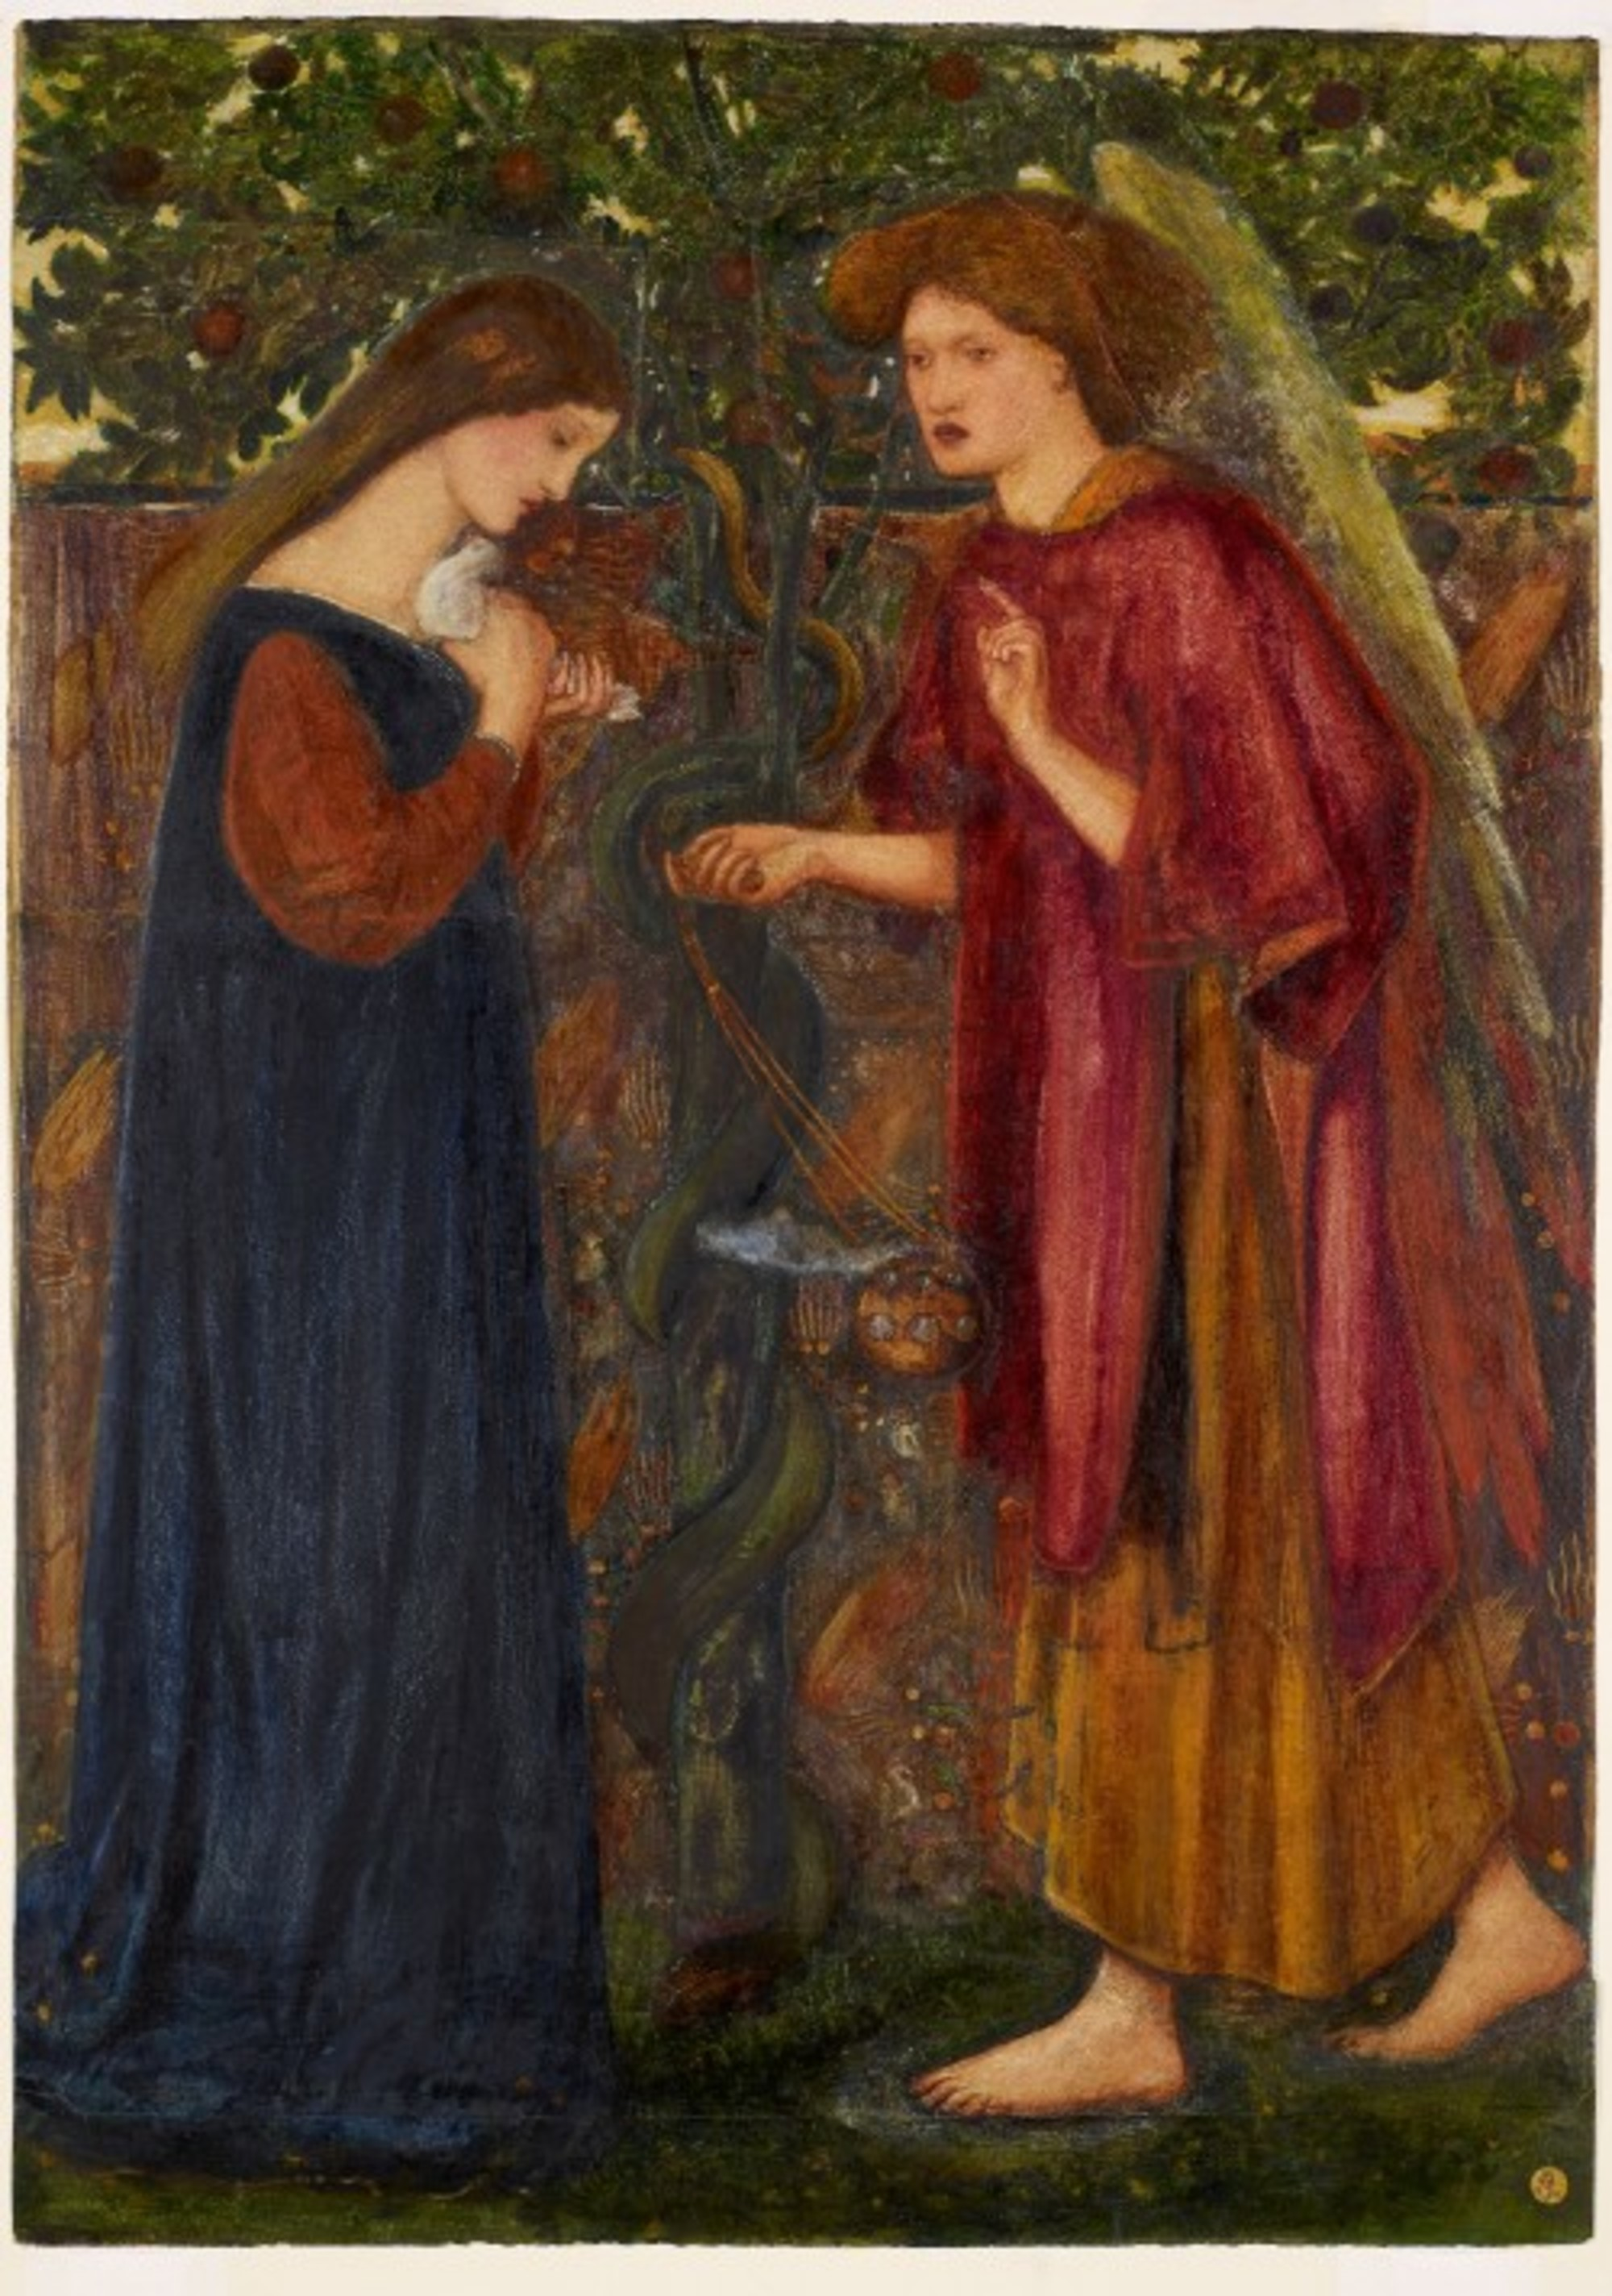 Edward-Burne-Jones---The-Annunciation---Google-Art-Project.jpg